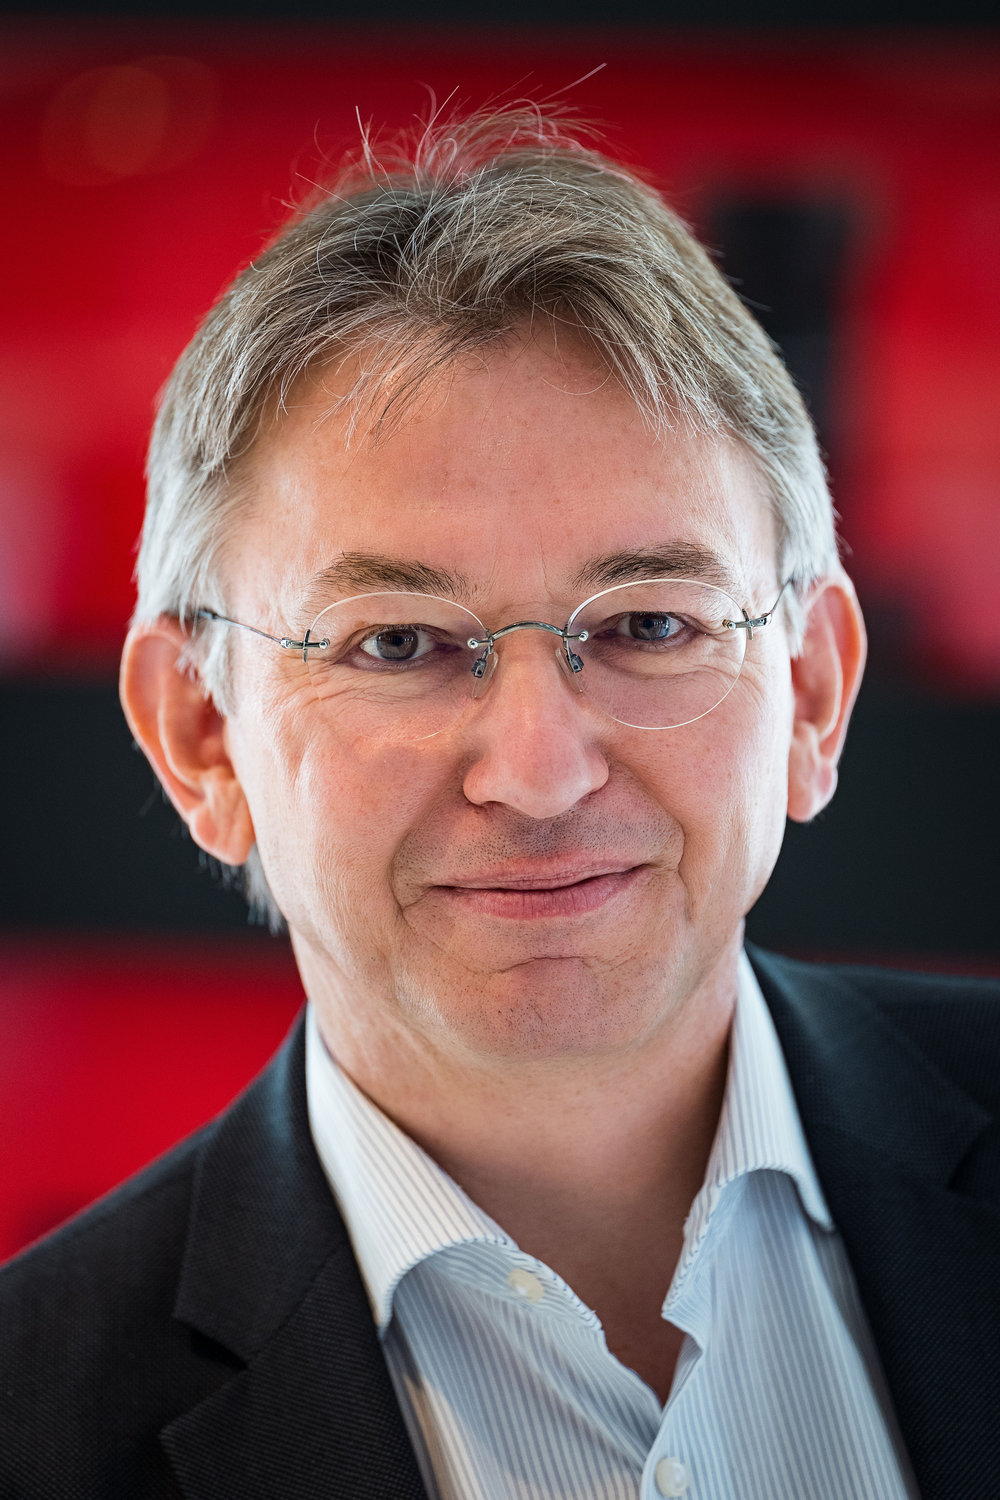 Stephan Schultz is Leica's new Global Drector responsible for the professional business unit